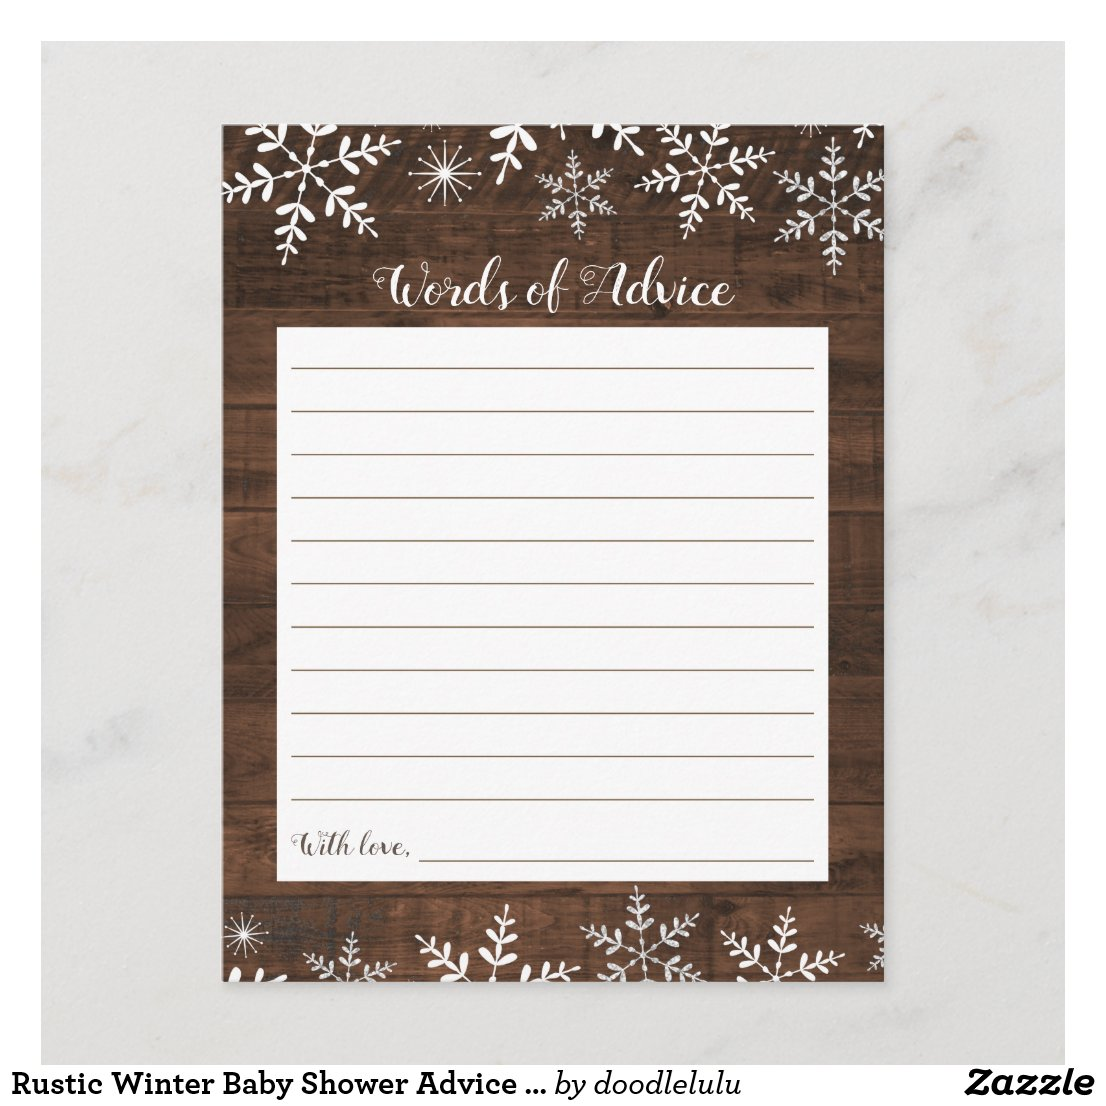 Rustic Winter Baby Shower Advice Card Snowflakes